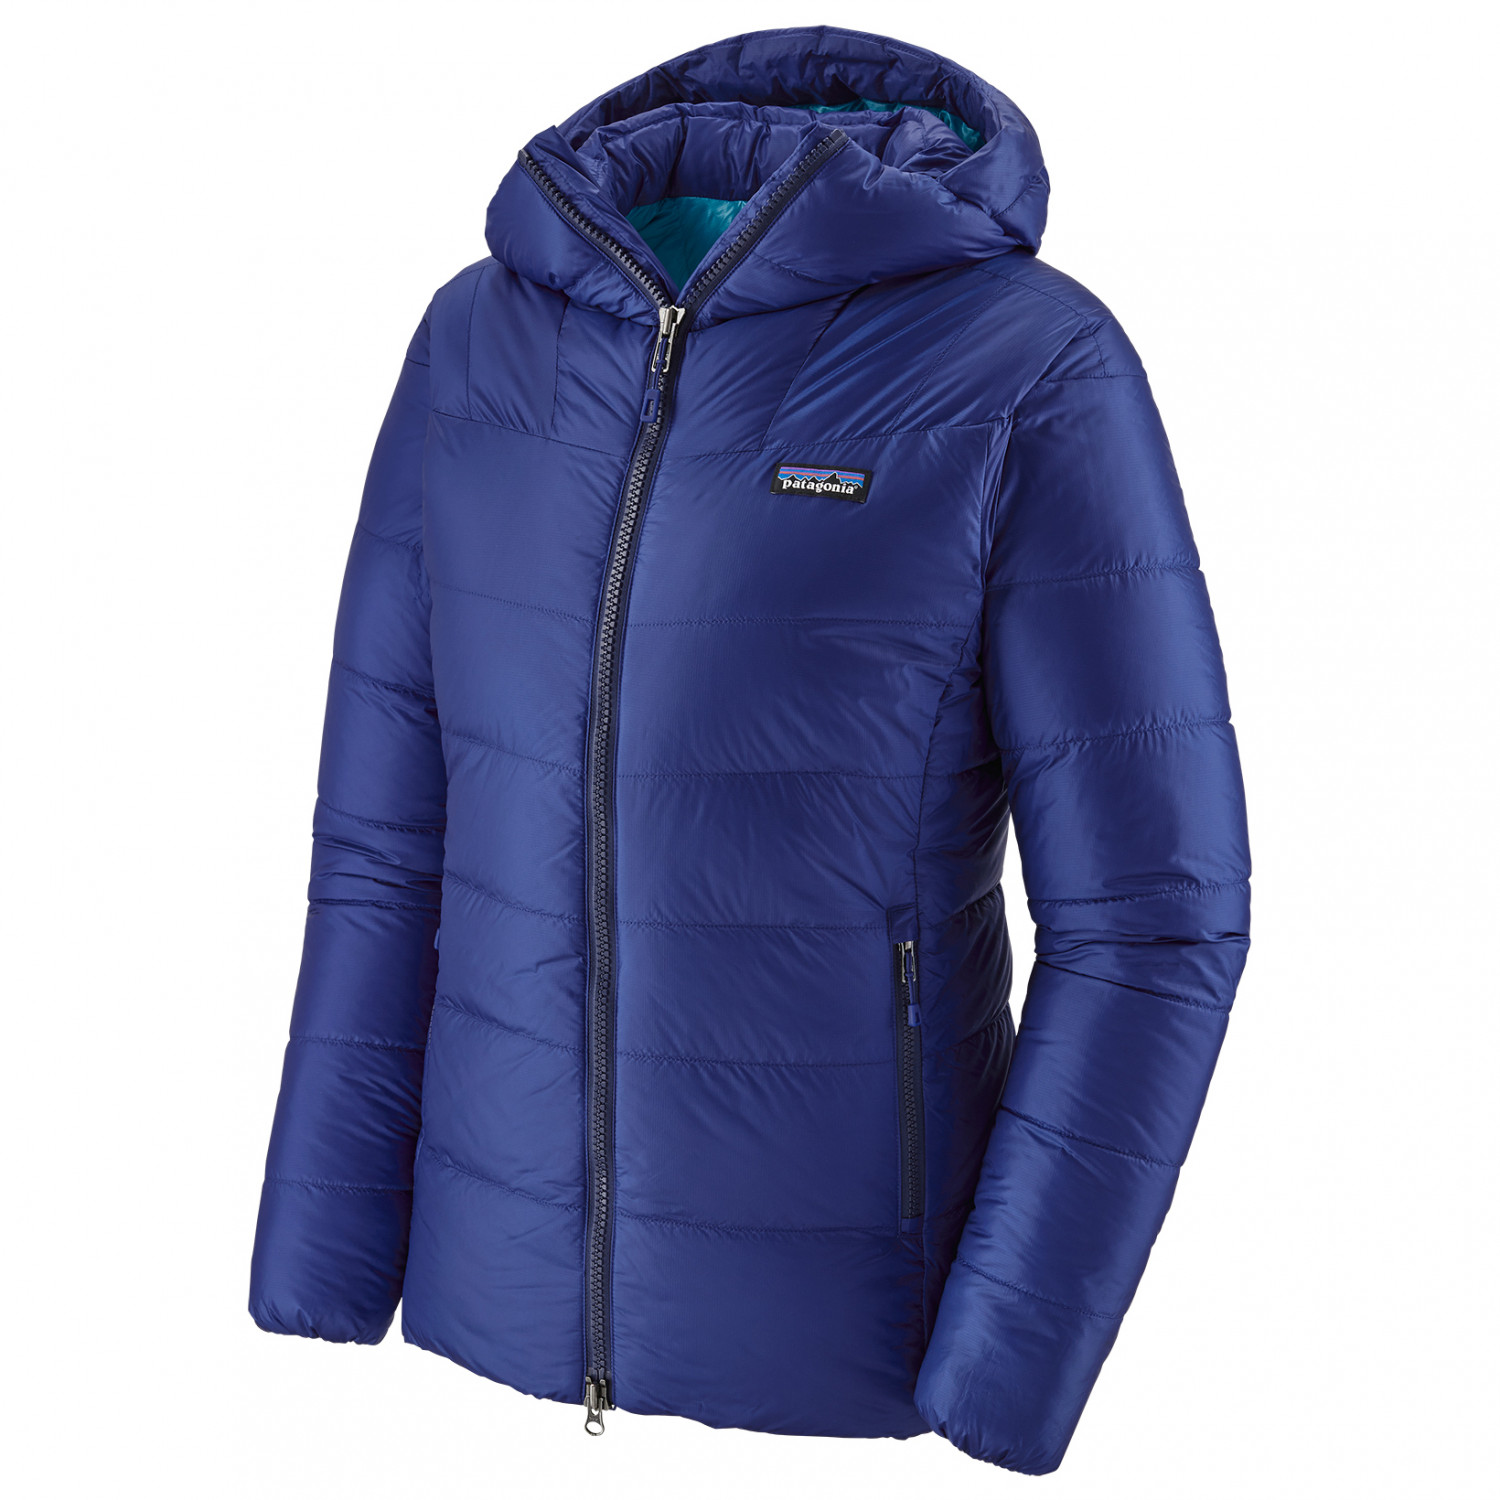 newest 063b2 61d0f Patagonia - Women's Fitz Roy Down Parka - Giacca in piumino - Cobalt Blue    XS